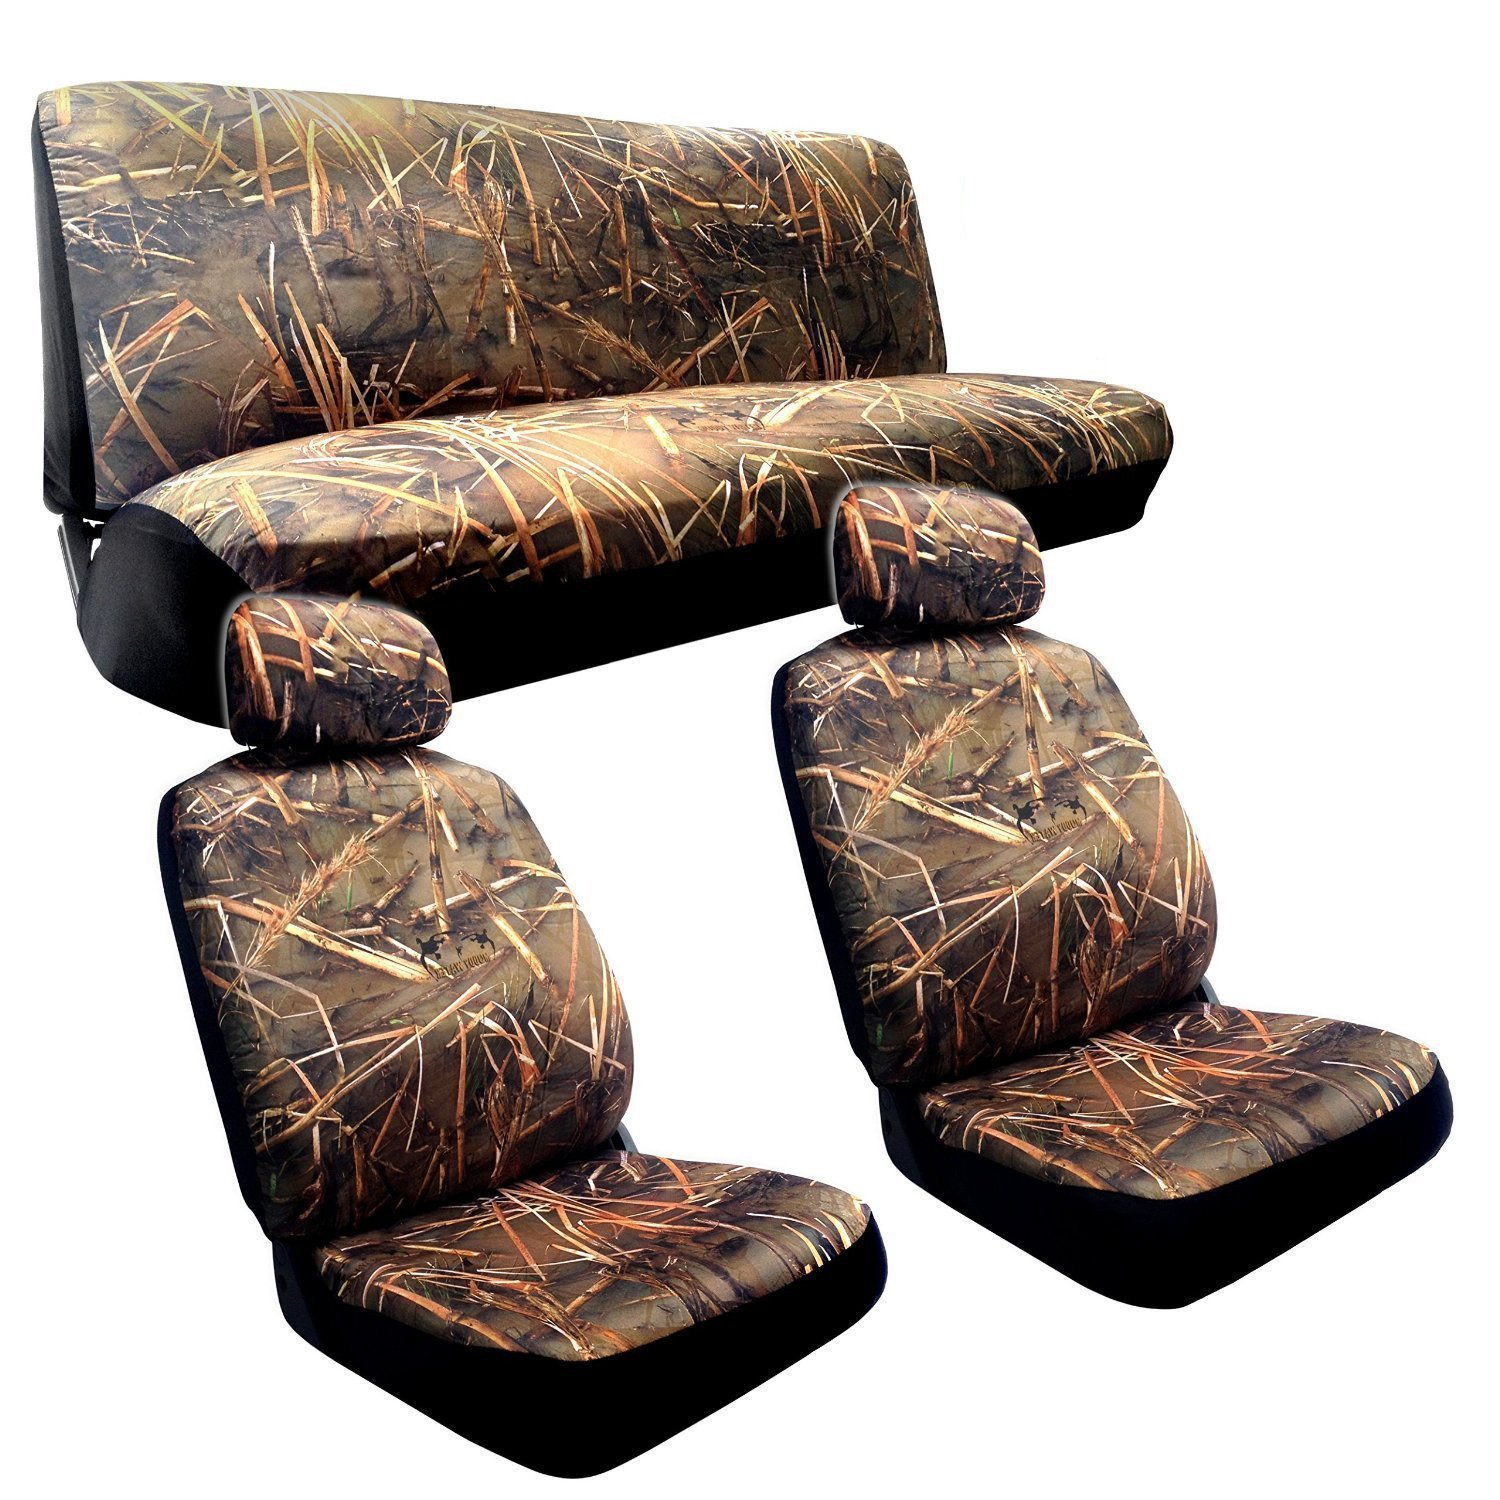 Muddy Water Camo Seat Covers for Suzuki ar Bench) Duck Forest Camouflage Hunting